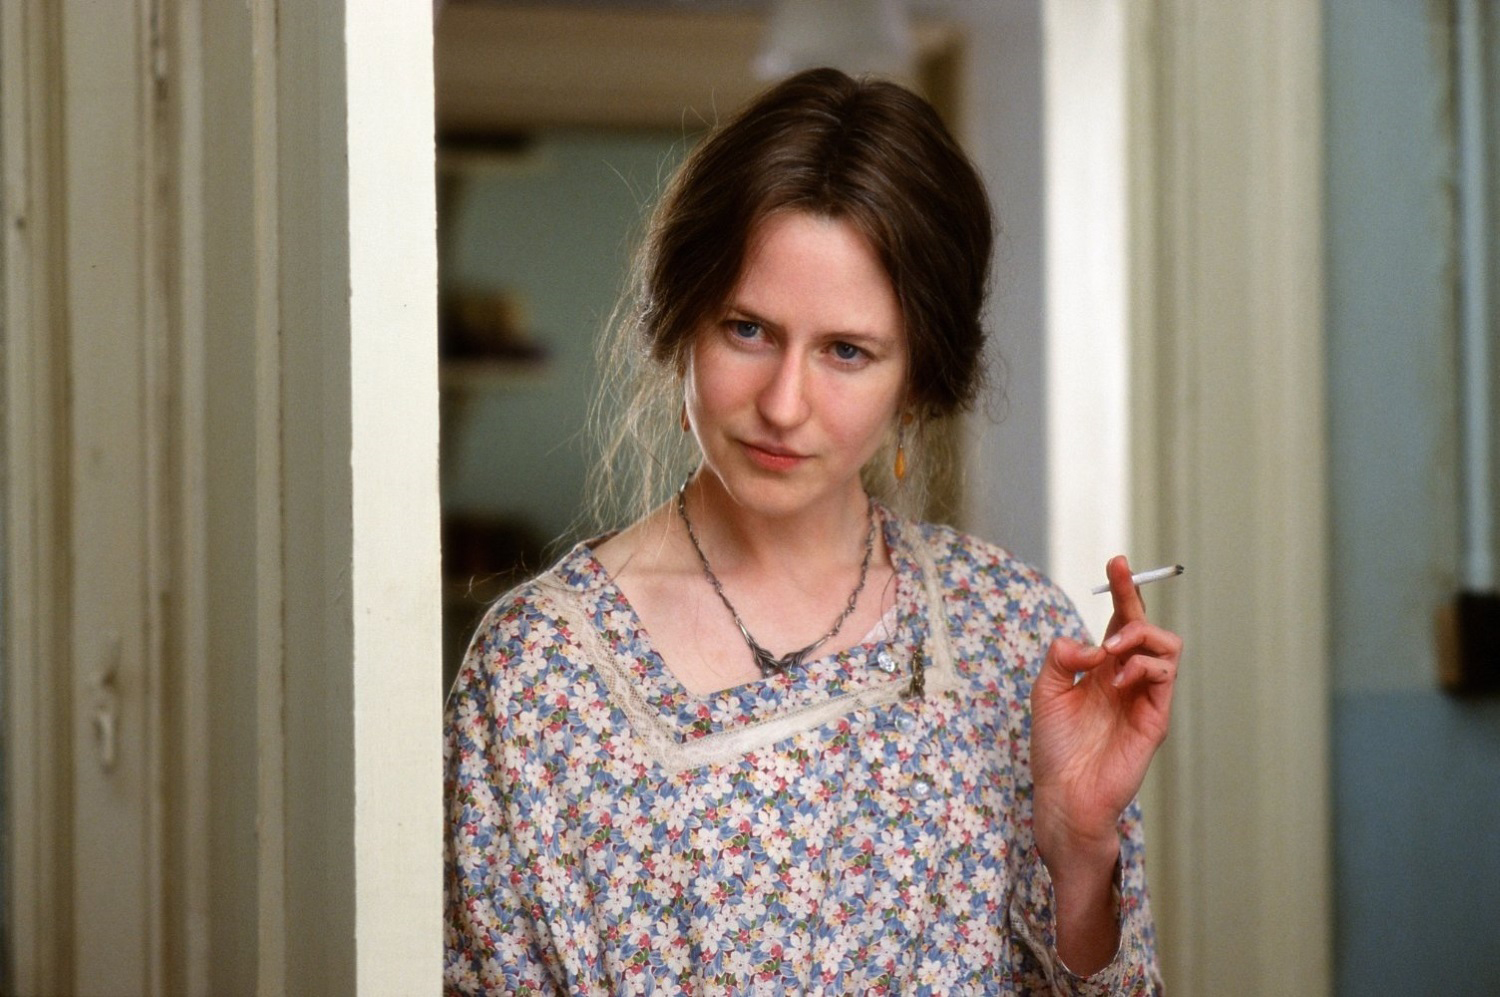 the hours film analysis The hours follows three women through one day in their lives one of the narrative strands explores the day in 1923 when virginia woolf begins to write mrs dalloway another centers around a day in the life of laura brown, an american housewife, in 1949, in which she spends part of her time reading.